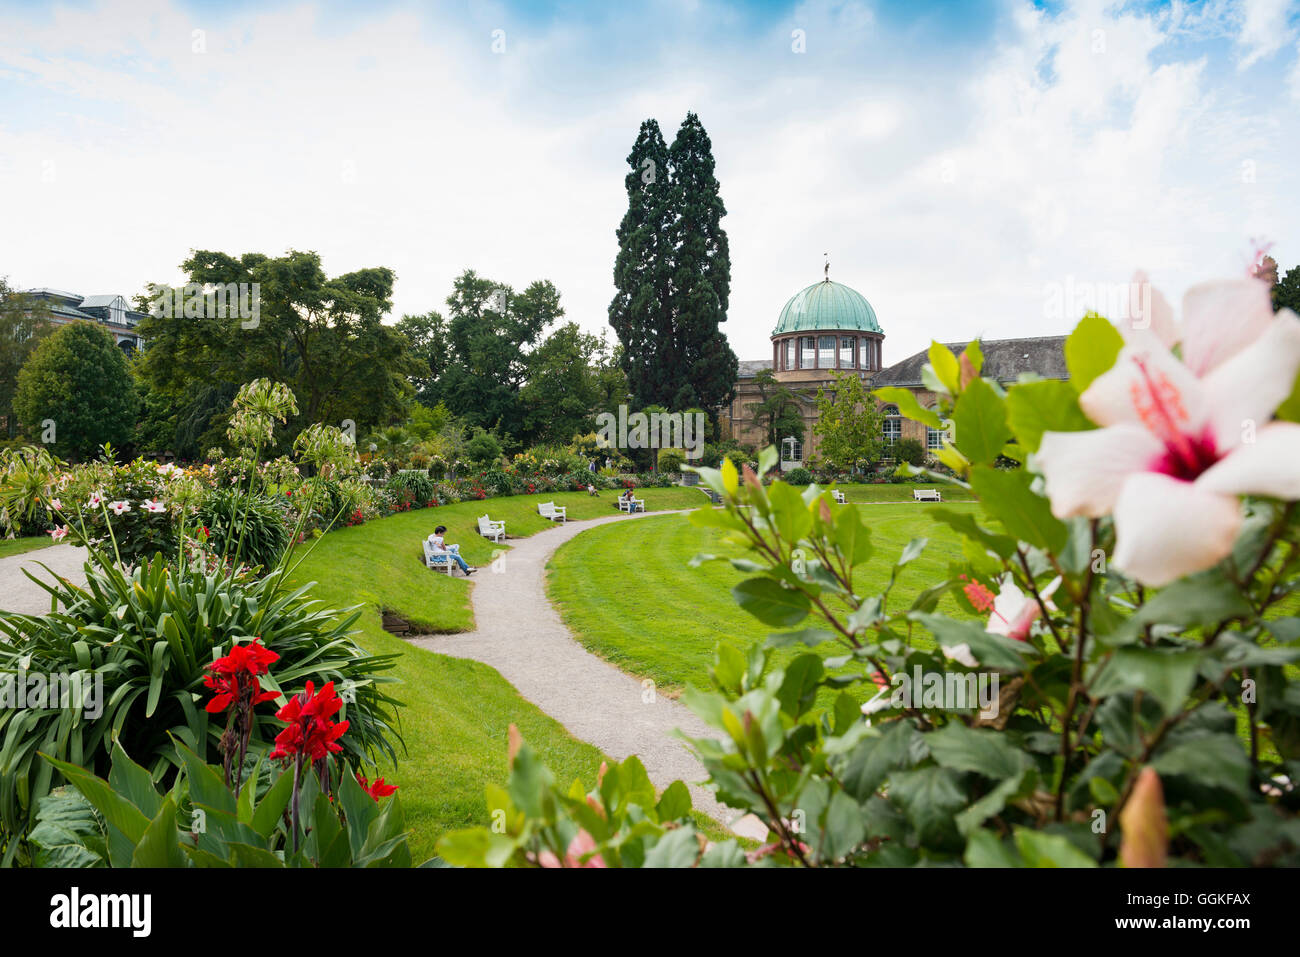 botanischer garten karlsruhe baden w rttemberg deutschland stockfoto bild 113525858 alamy. Black Bedroom Furniture Sets. Home Design Ideas